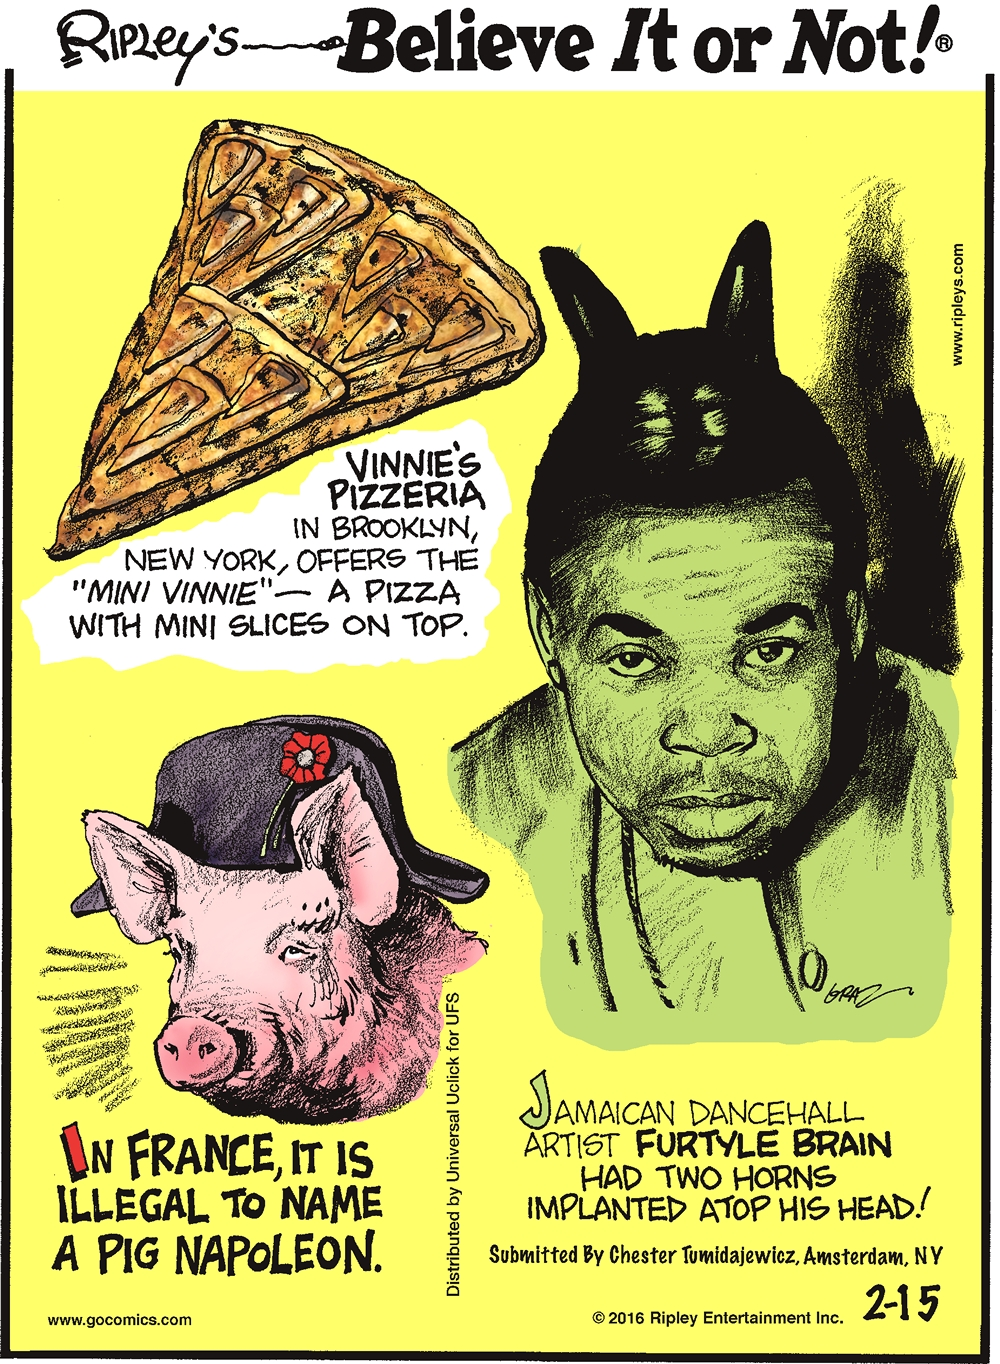 "Vinnie's pizzeria in Brooklyn, New York, offers the ""Mini Vinnie""—a pizza with mini slices on top. -------------------- In France, it is illegal to name a pig Napoleon. -------------------- Jamaican dance hall artist Furtyle Brain had two horn implanted atop his head! Submitted by Chester Tumidajewicz, Amsterdam, NY."